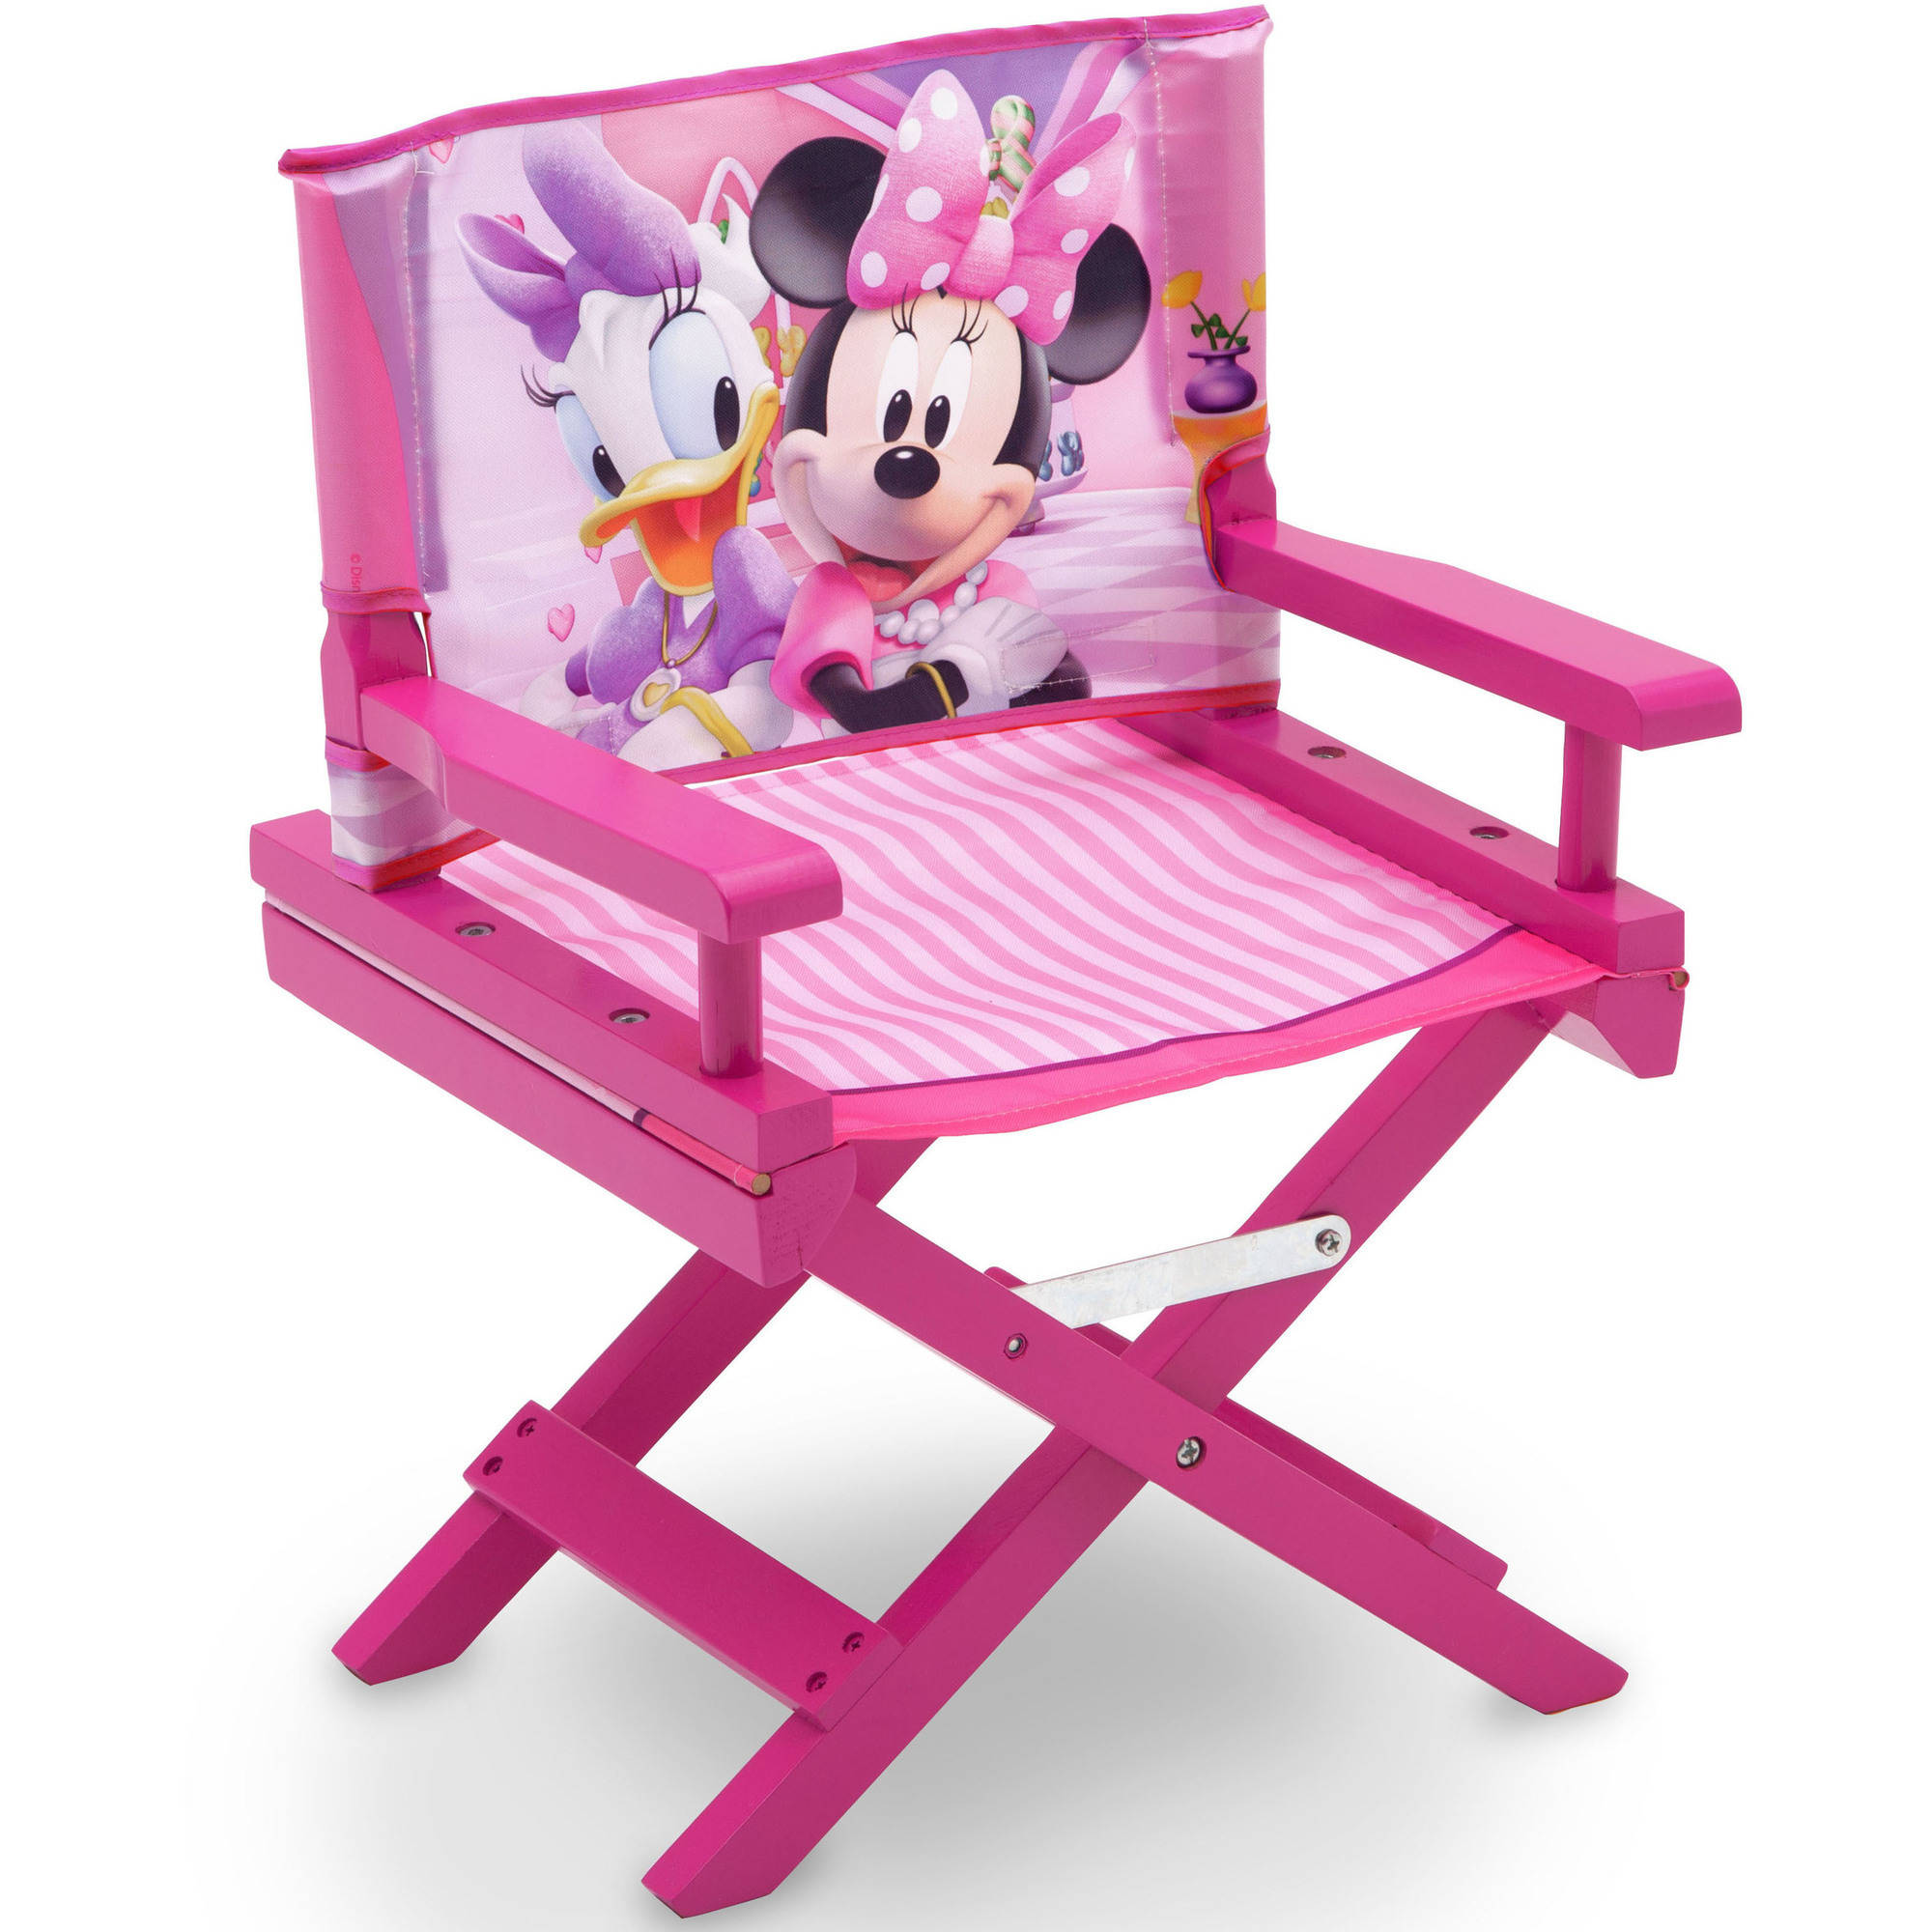 Disney Minnie Mouse Director's Chair